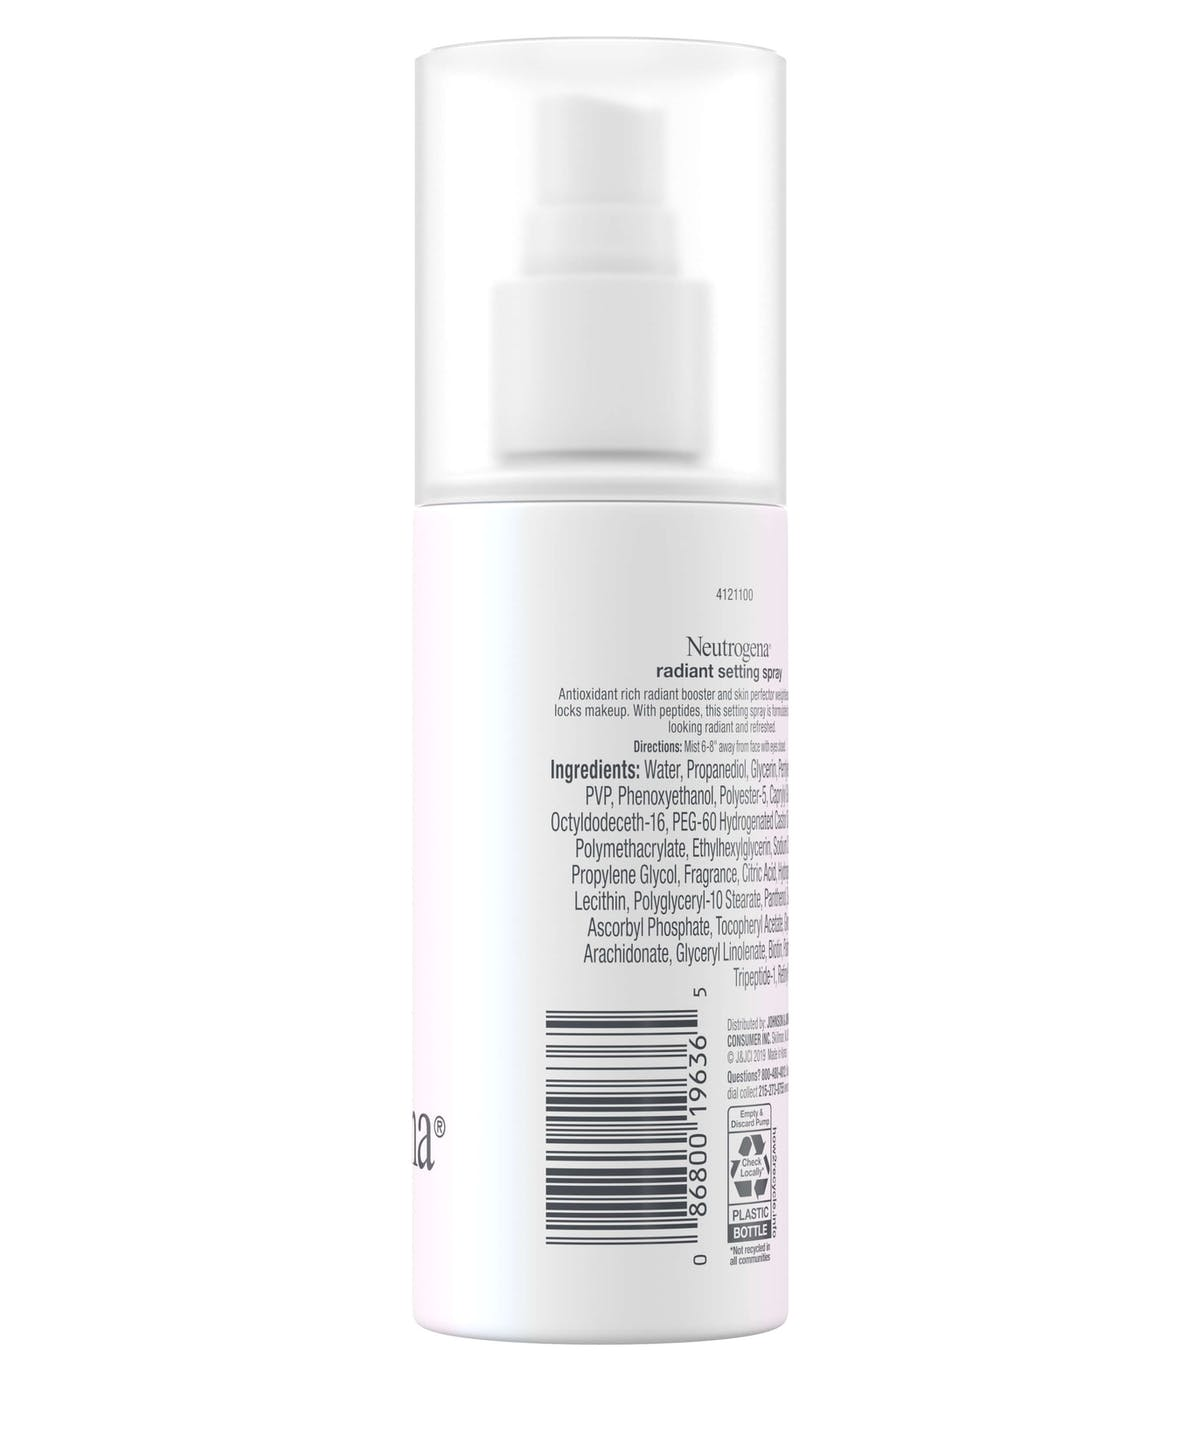 Radiant Makeup Setting Spray With Peptides by Neutrogena #21